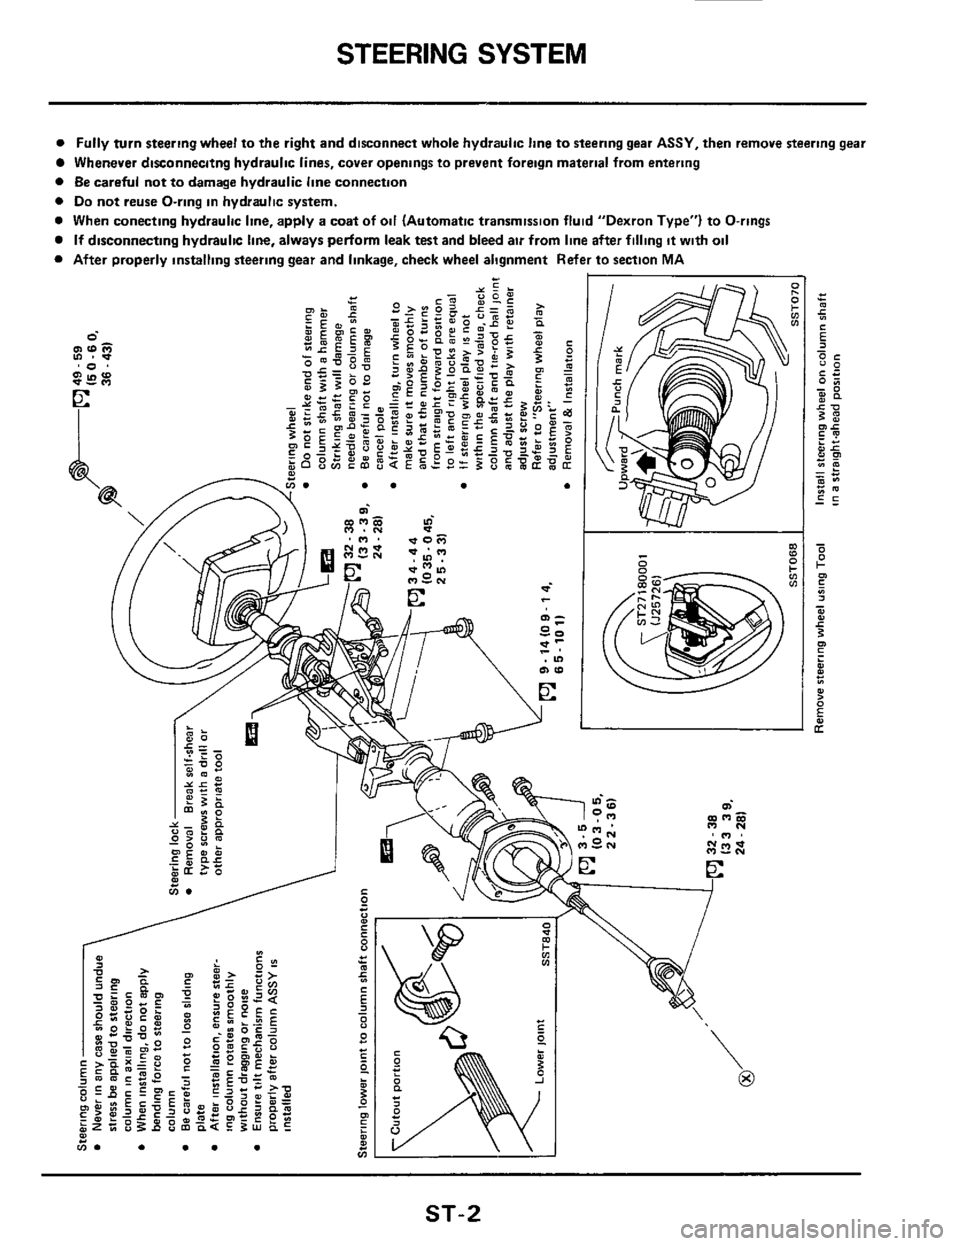 NISSAN 300ZX 1984 Z31 Steering System Workshop Manual